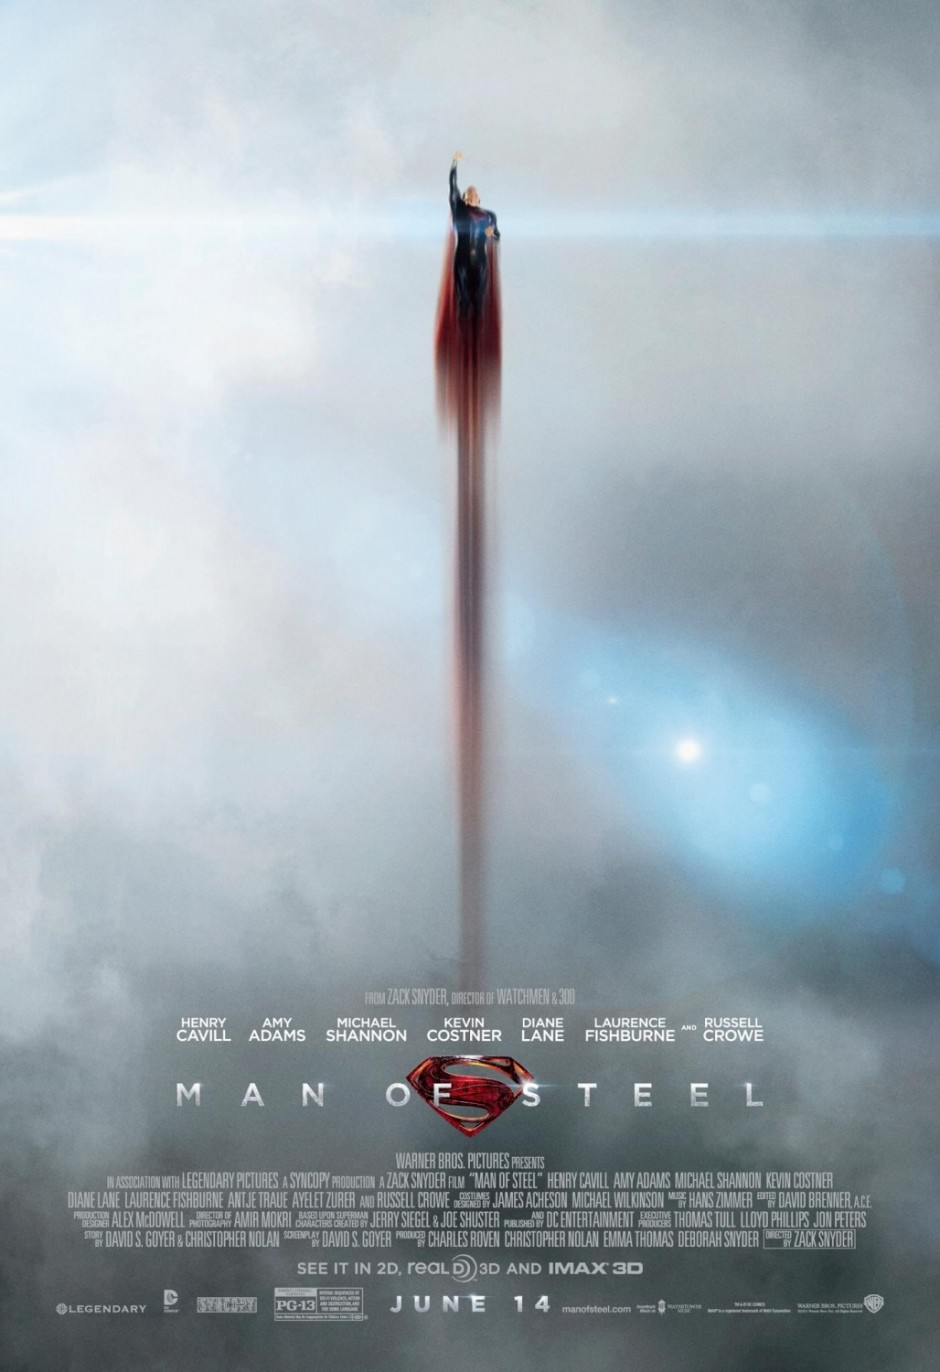 Man-of-Steel-2013-Movie-Poster3-e1368399169706.jpg